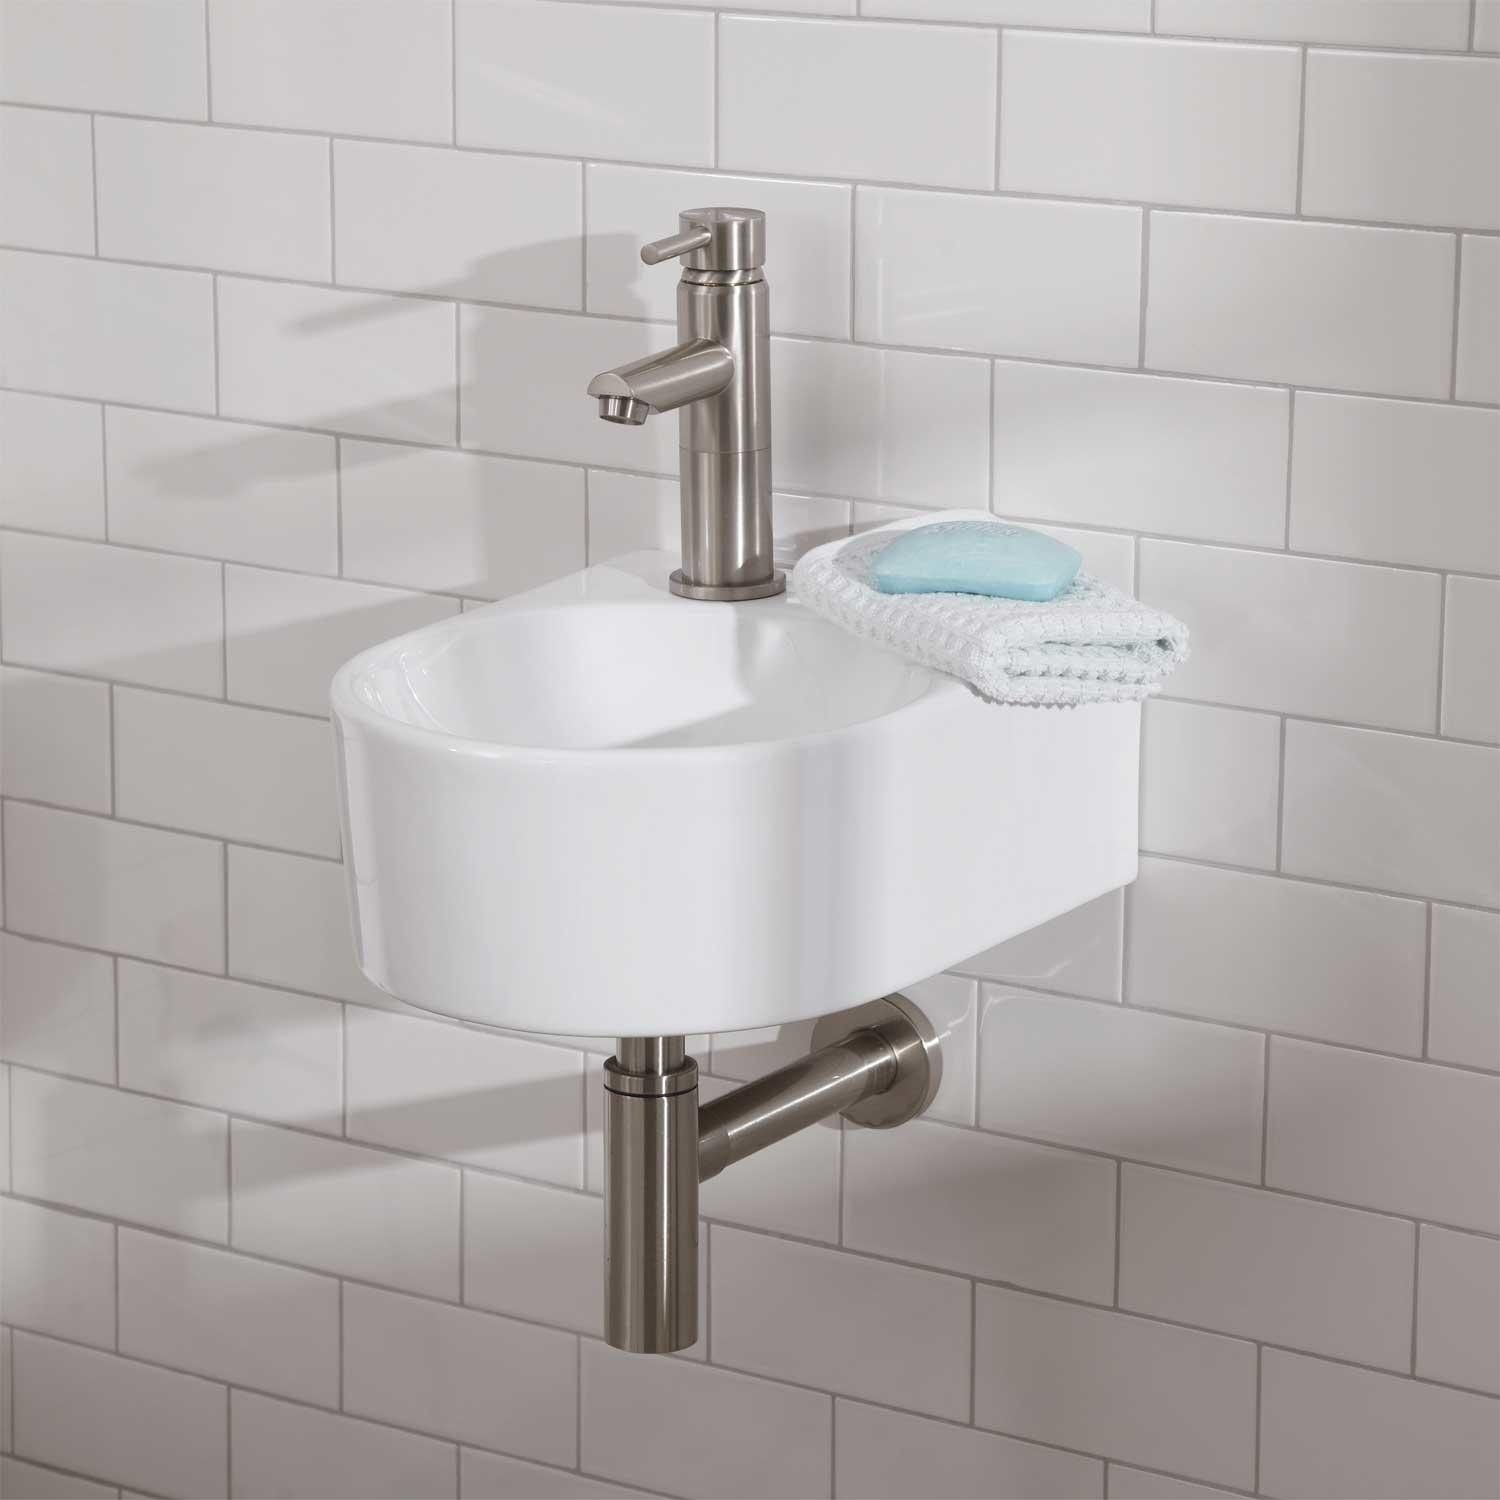 Lacefield Wall Mount Bathroom Sink Small Bathroom Vanities Small Vanity Sink Small Bathroom Sinks